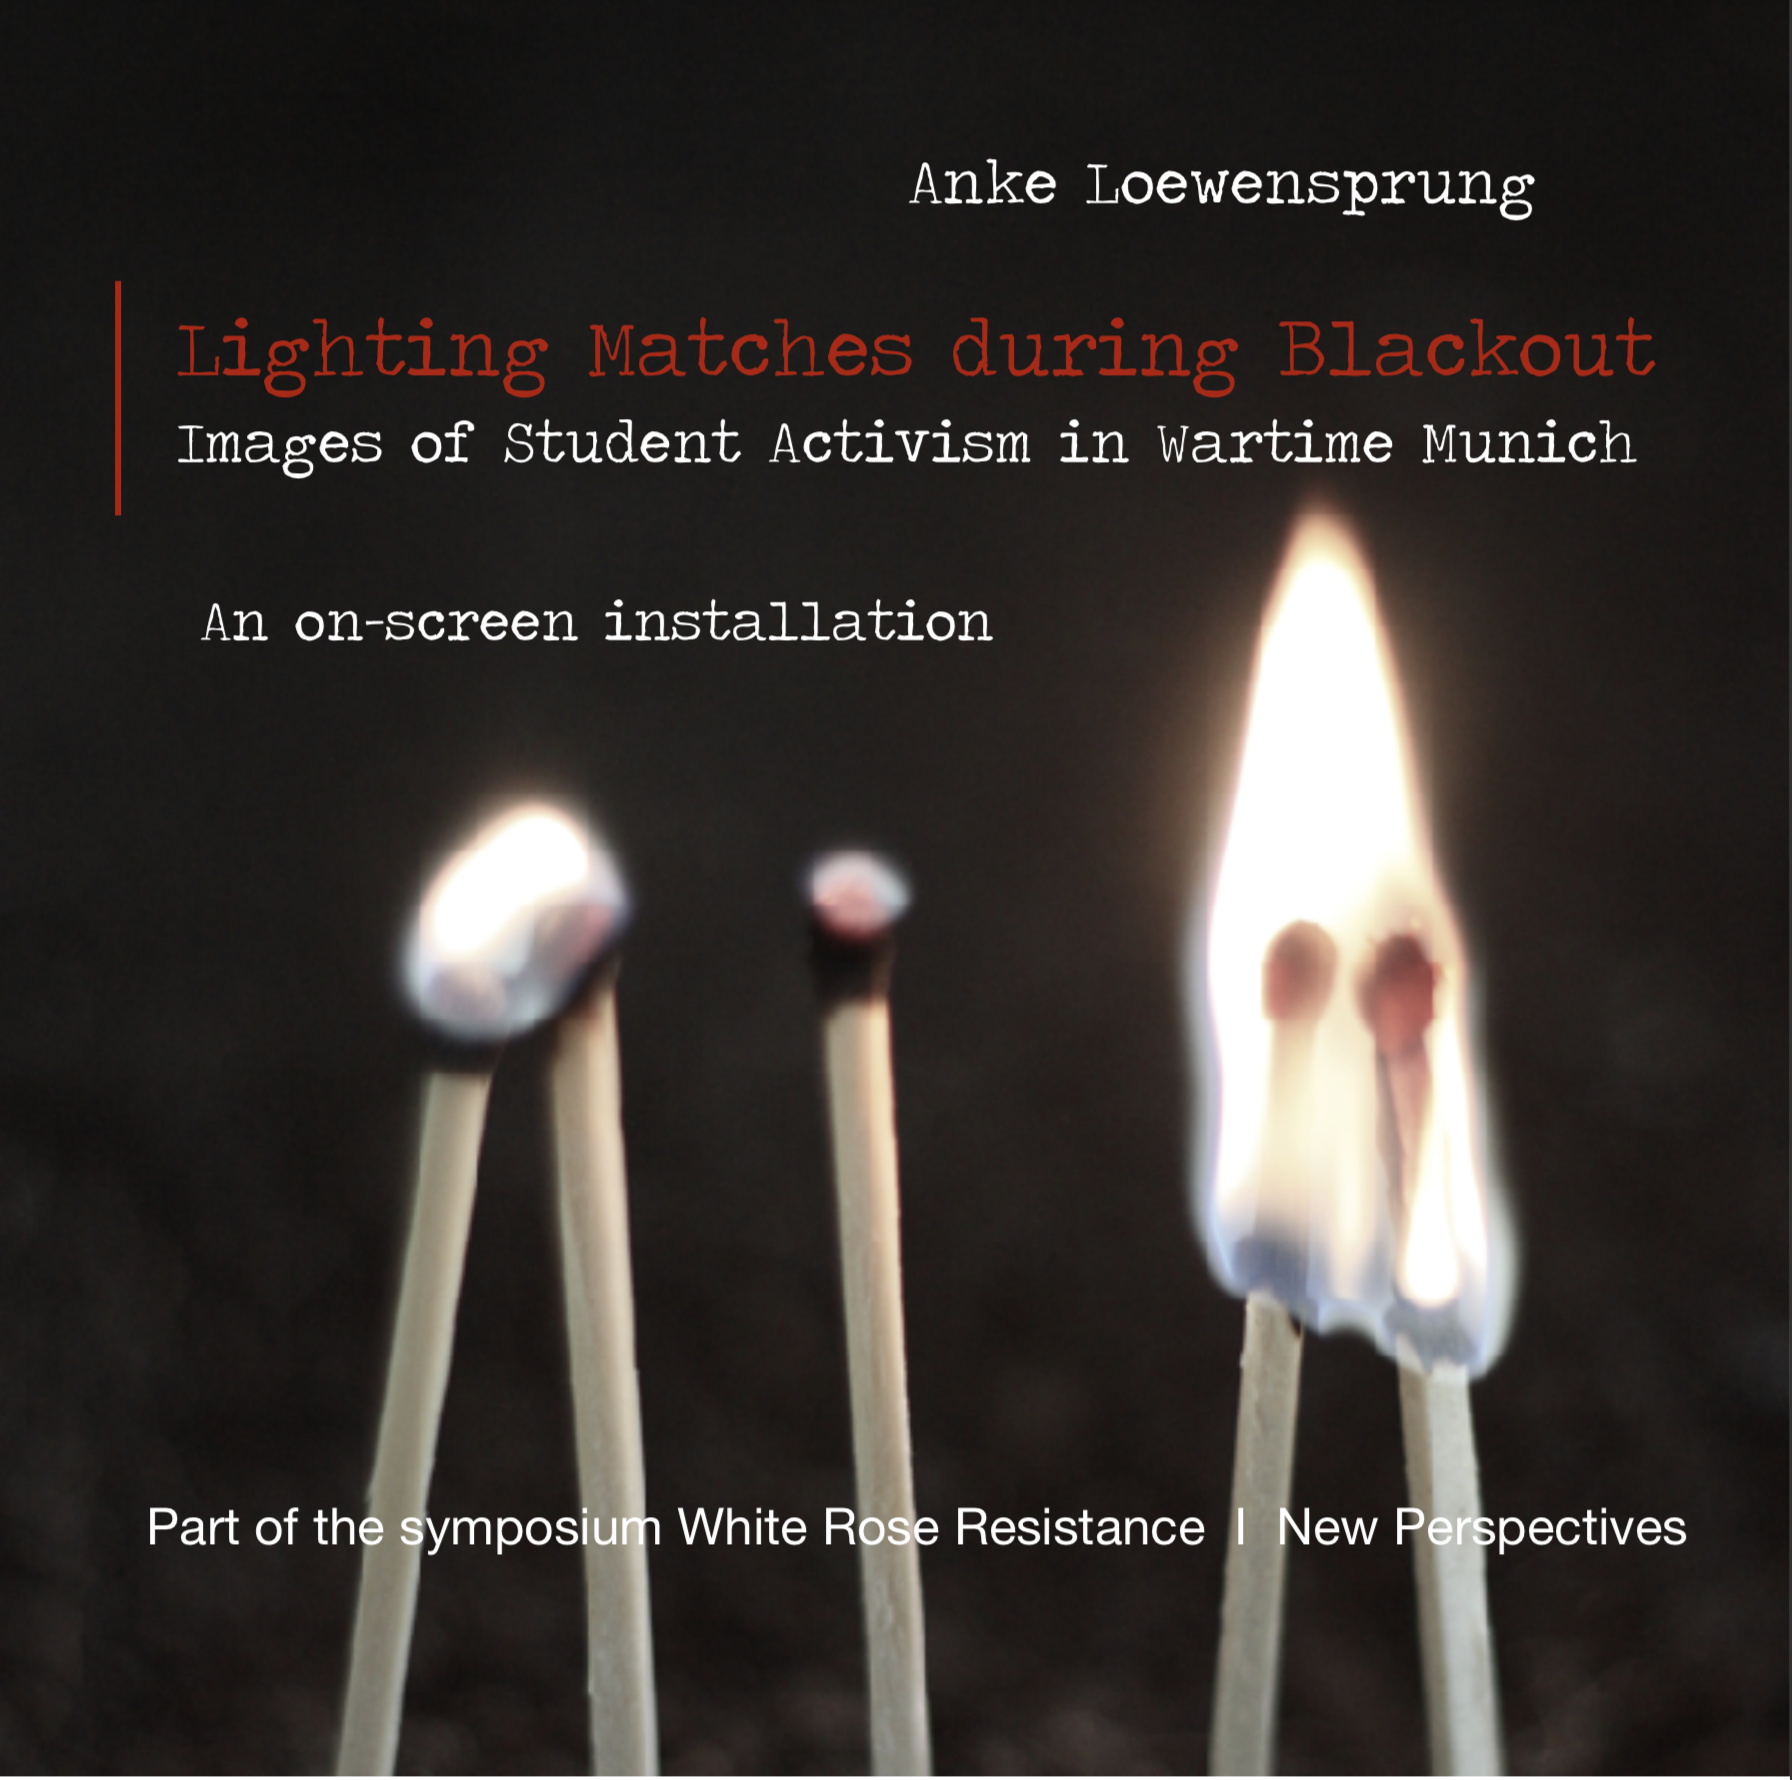 'Lighting Matches during Blackout: Student Activism in Munich 1942/1943'